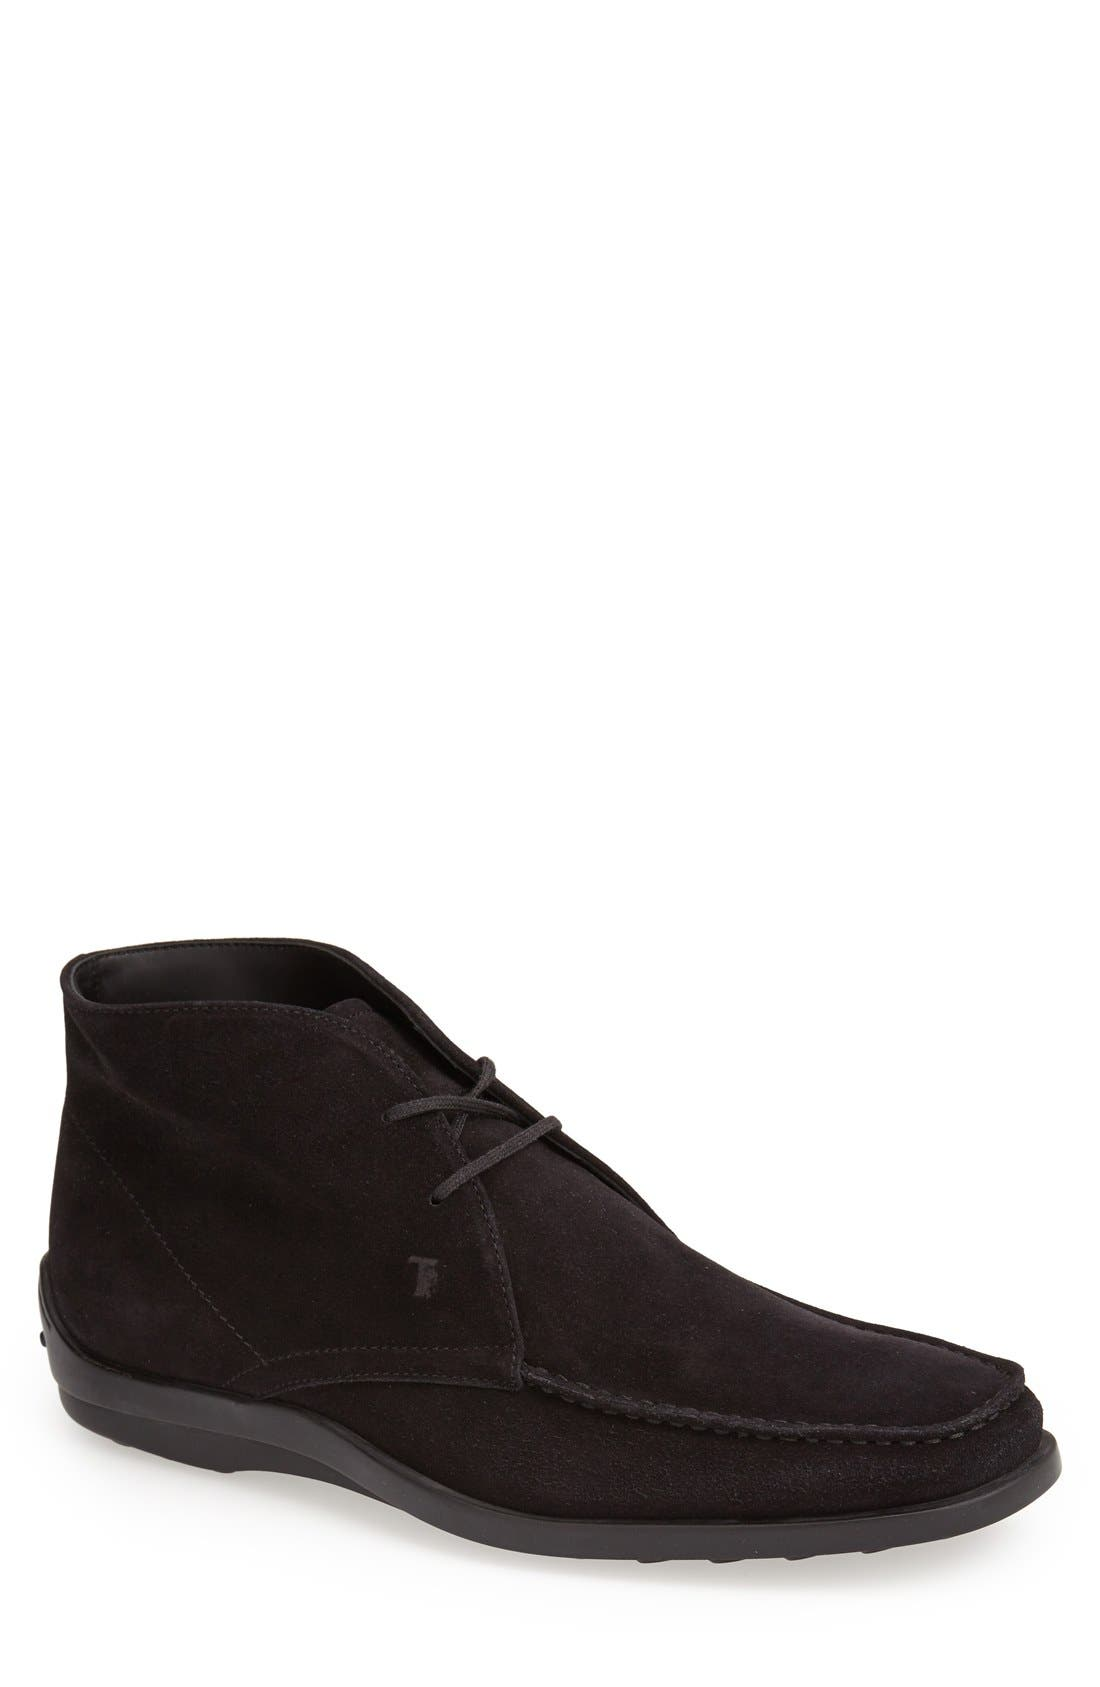 Alternate Image 1 Selected - Tod's 'Quinn' Ankle Boot